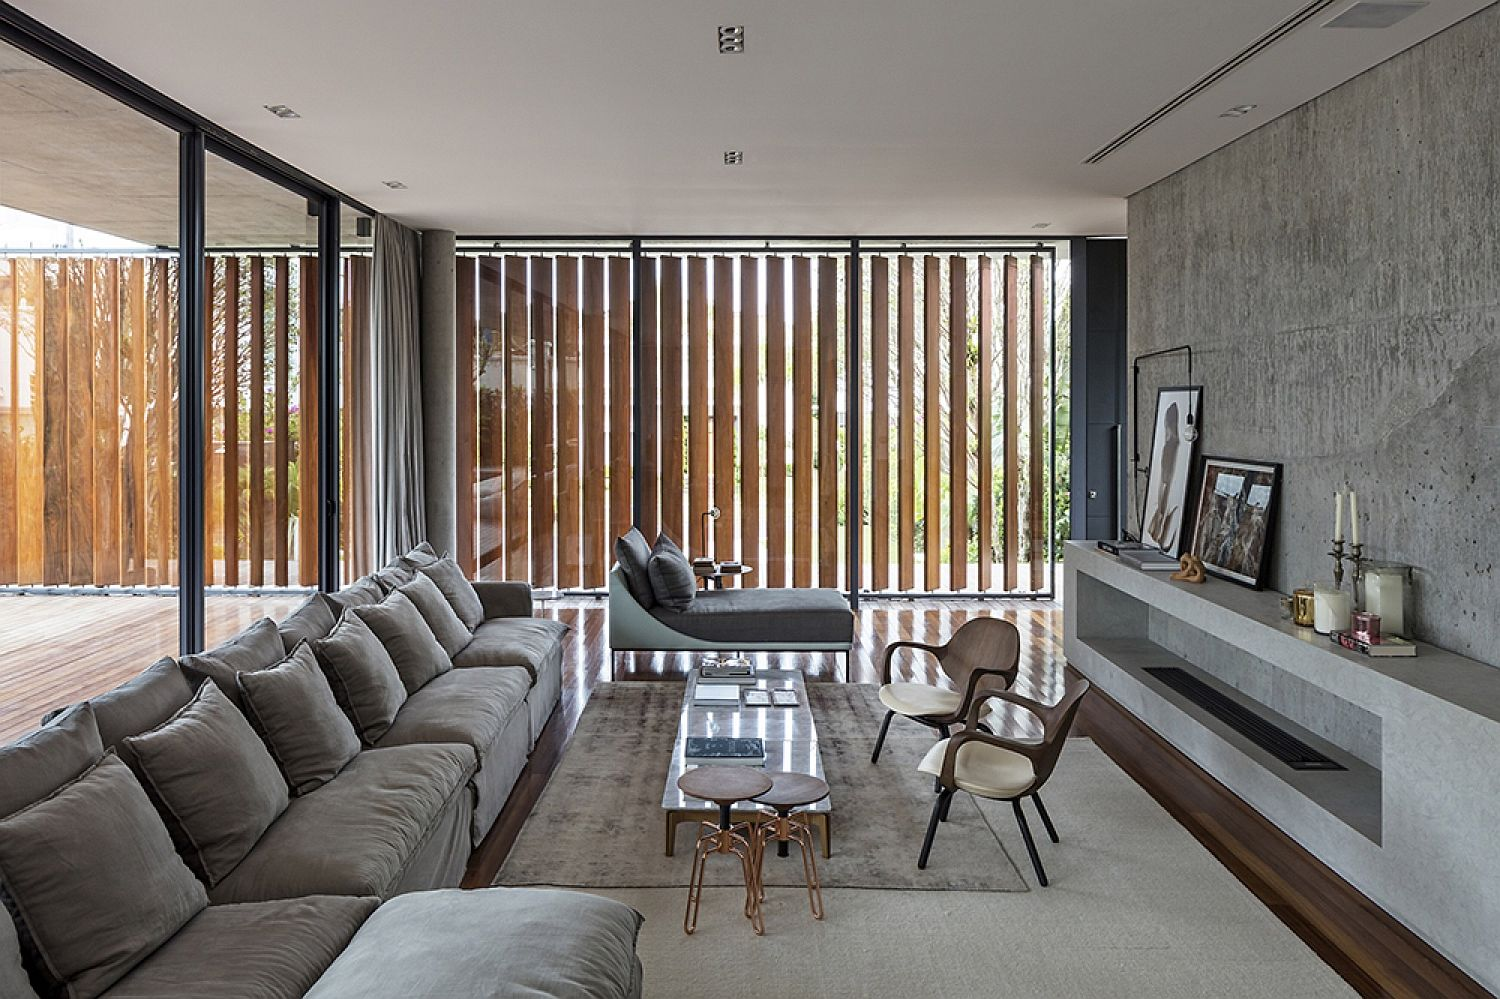 Wooden-slats-allows-those-inside-to-shift-between-privacy-and-unabated-views